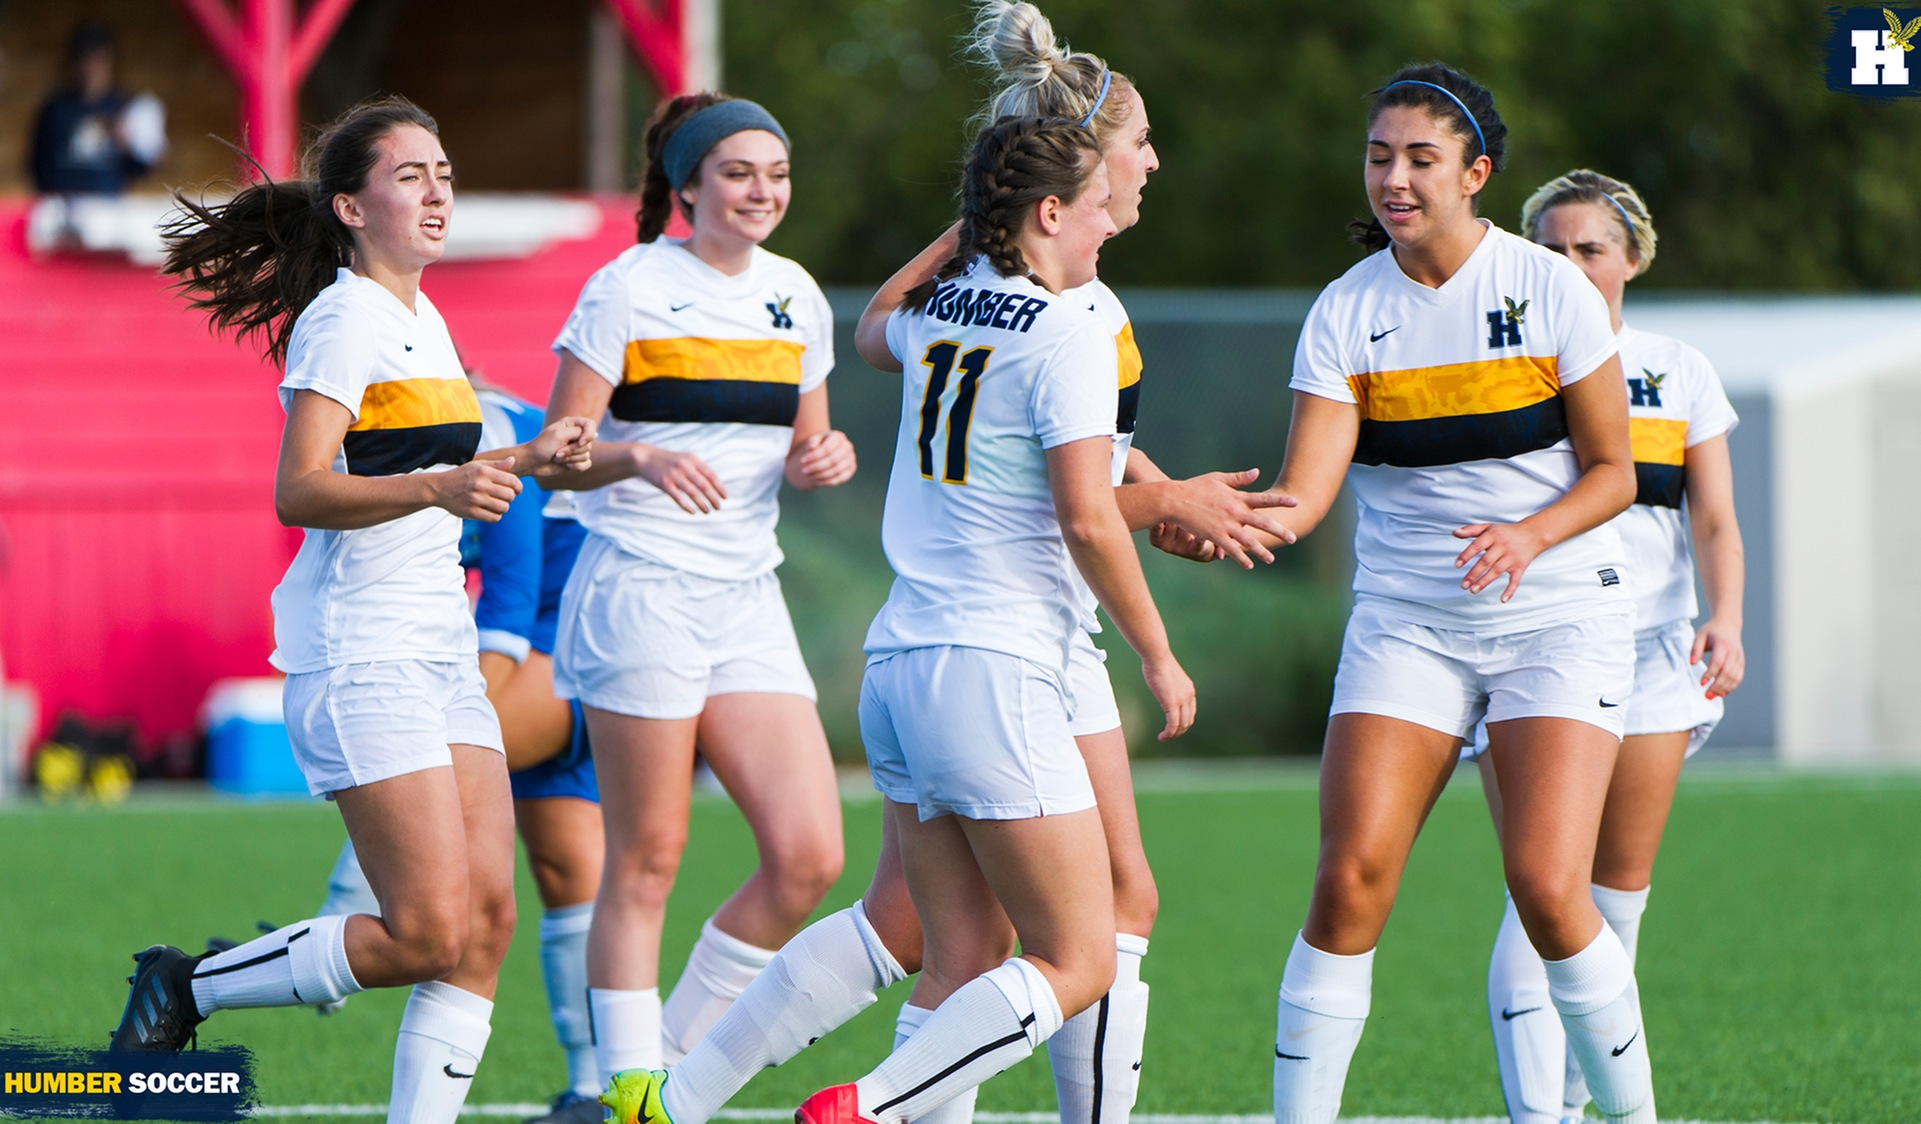 No. 4 WOMEN'S SOCCER SET TO FACE GEORGE BROWN FRIDAY